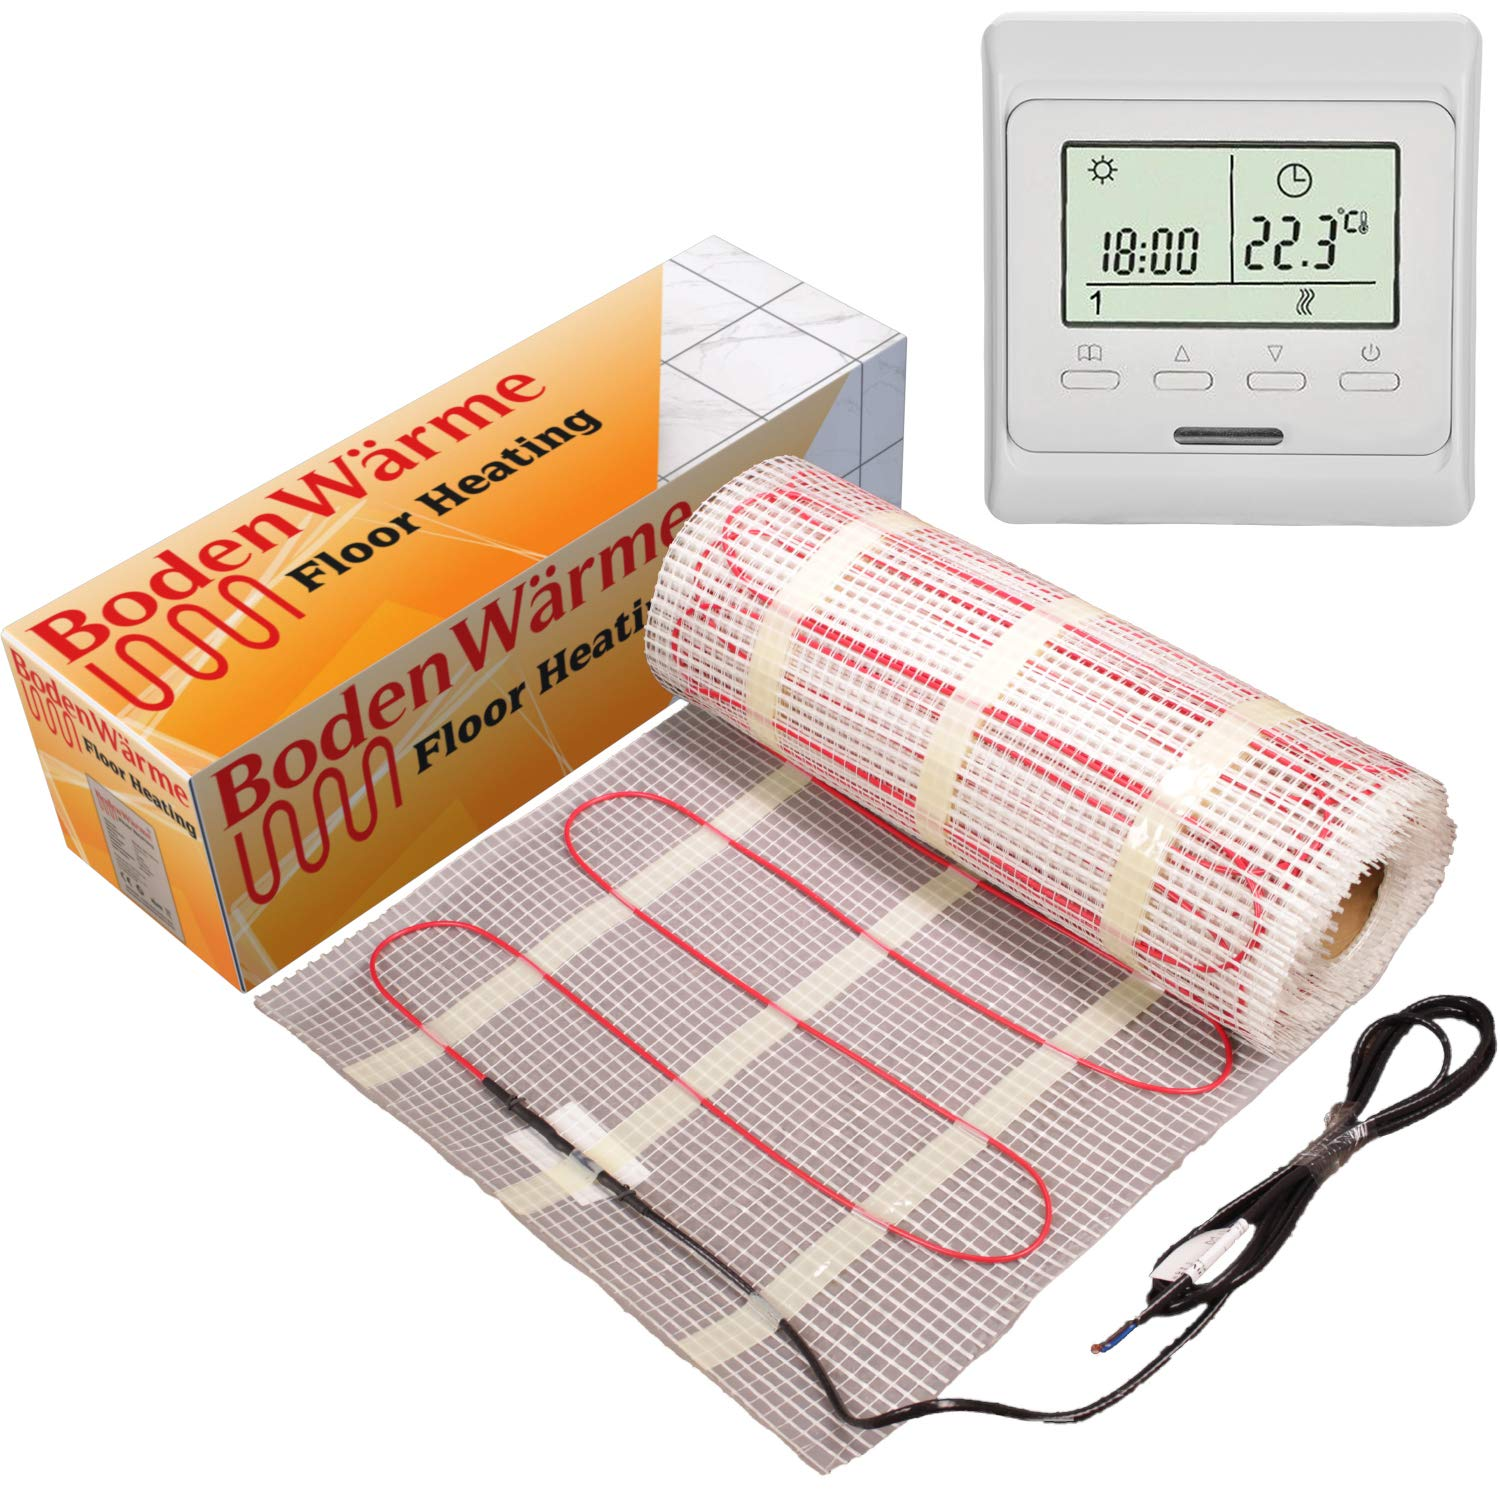 Underfloor Heating Mat 200w /m² + Thermostat. BodenWärme Premium Quality, Electric Dual Core Under Tile Heating (9.0m², Digital Thermostat)